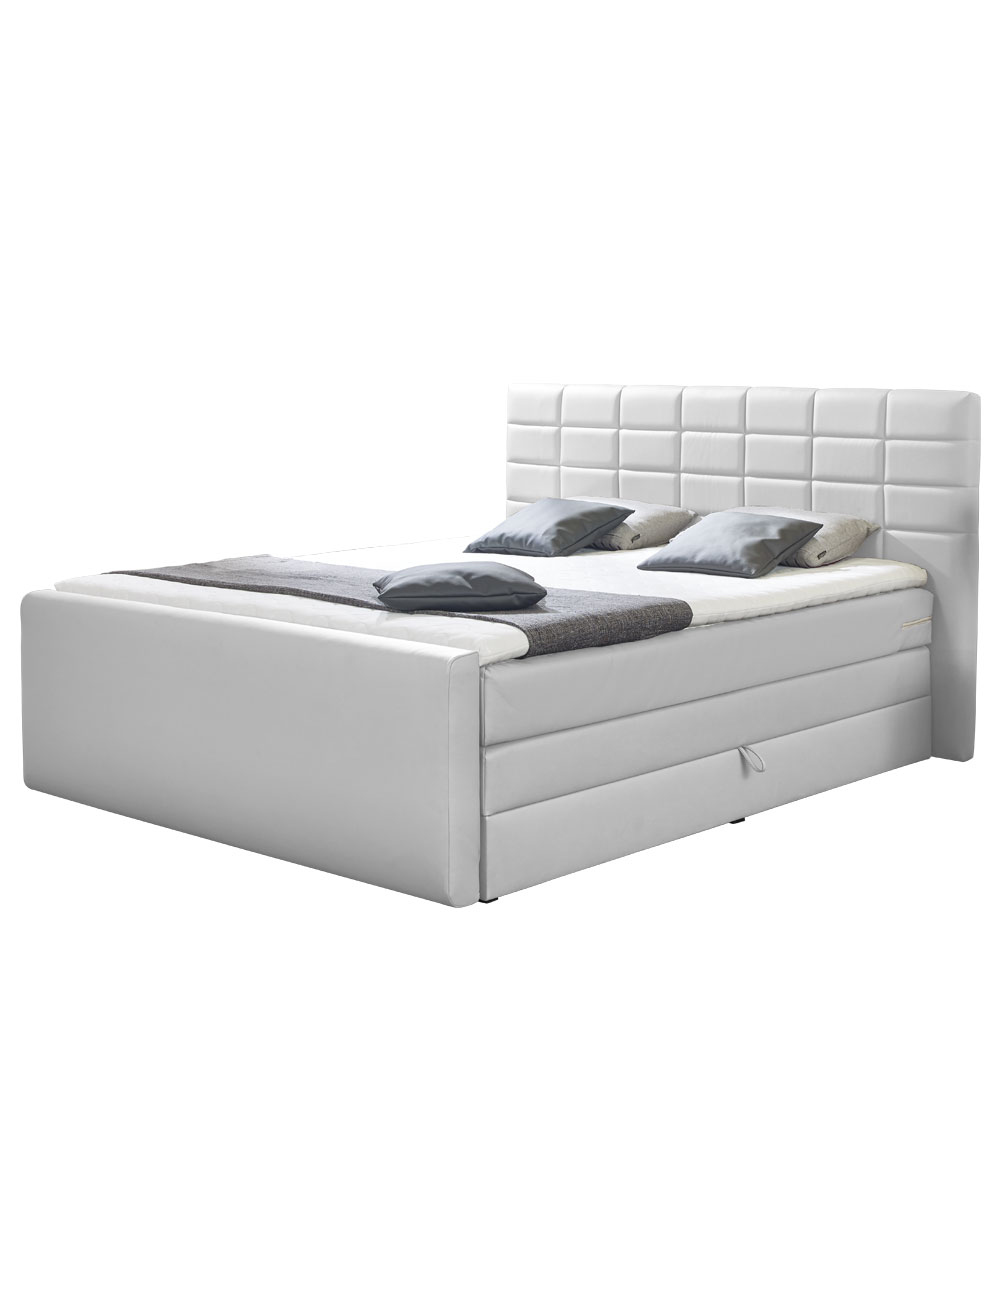 boxspring bett nora weiss 180 x 200 cm 2 boxen 2 matratzen. Black Bedroom Furniture Sets. Home Design Ideas